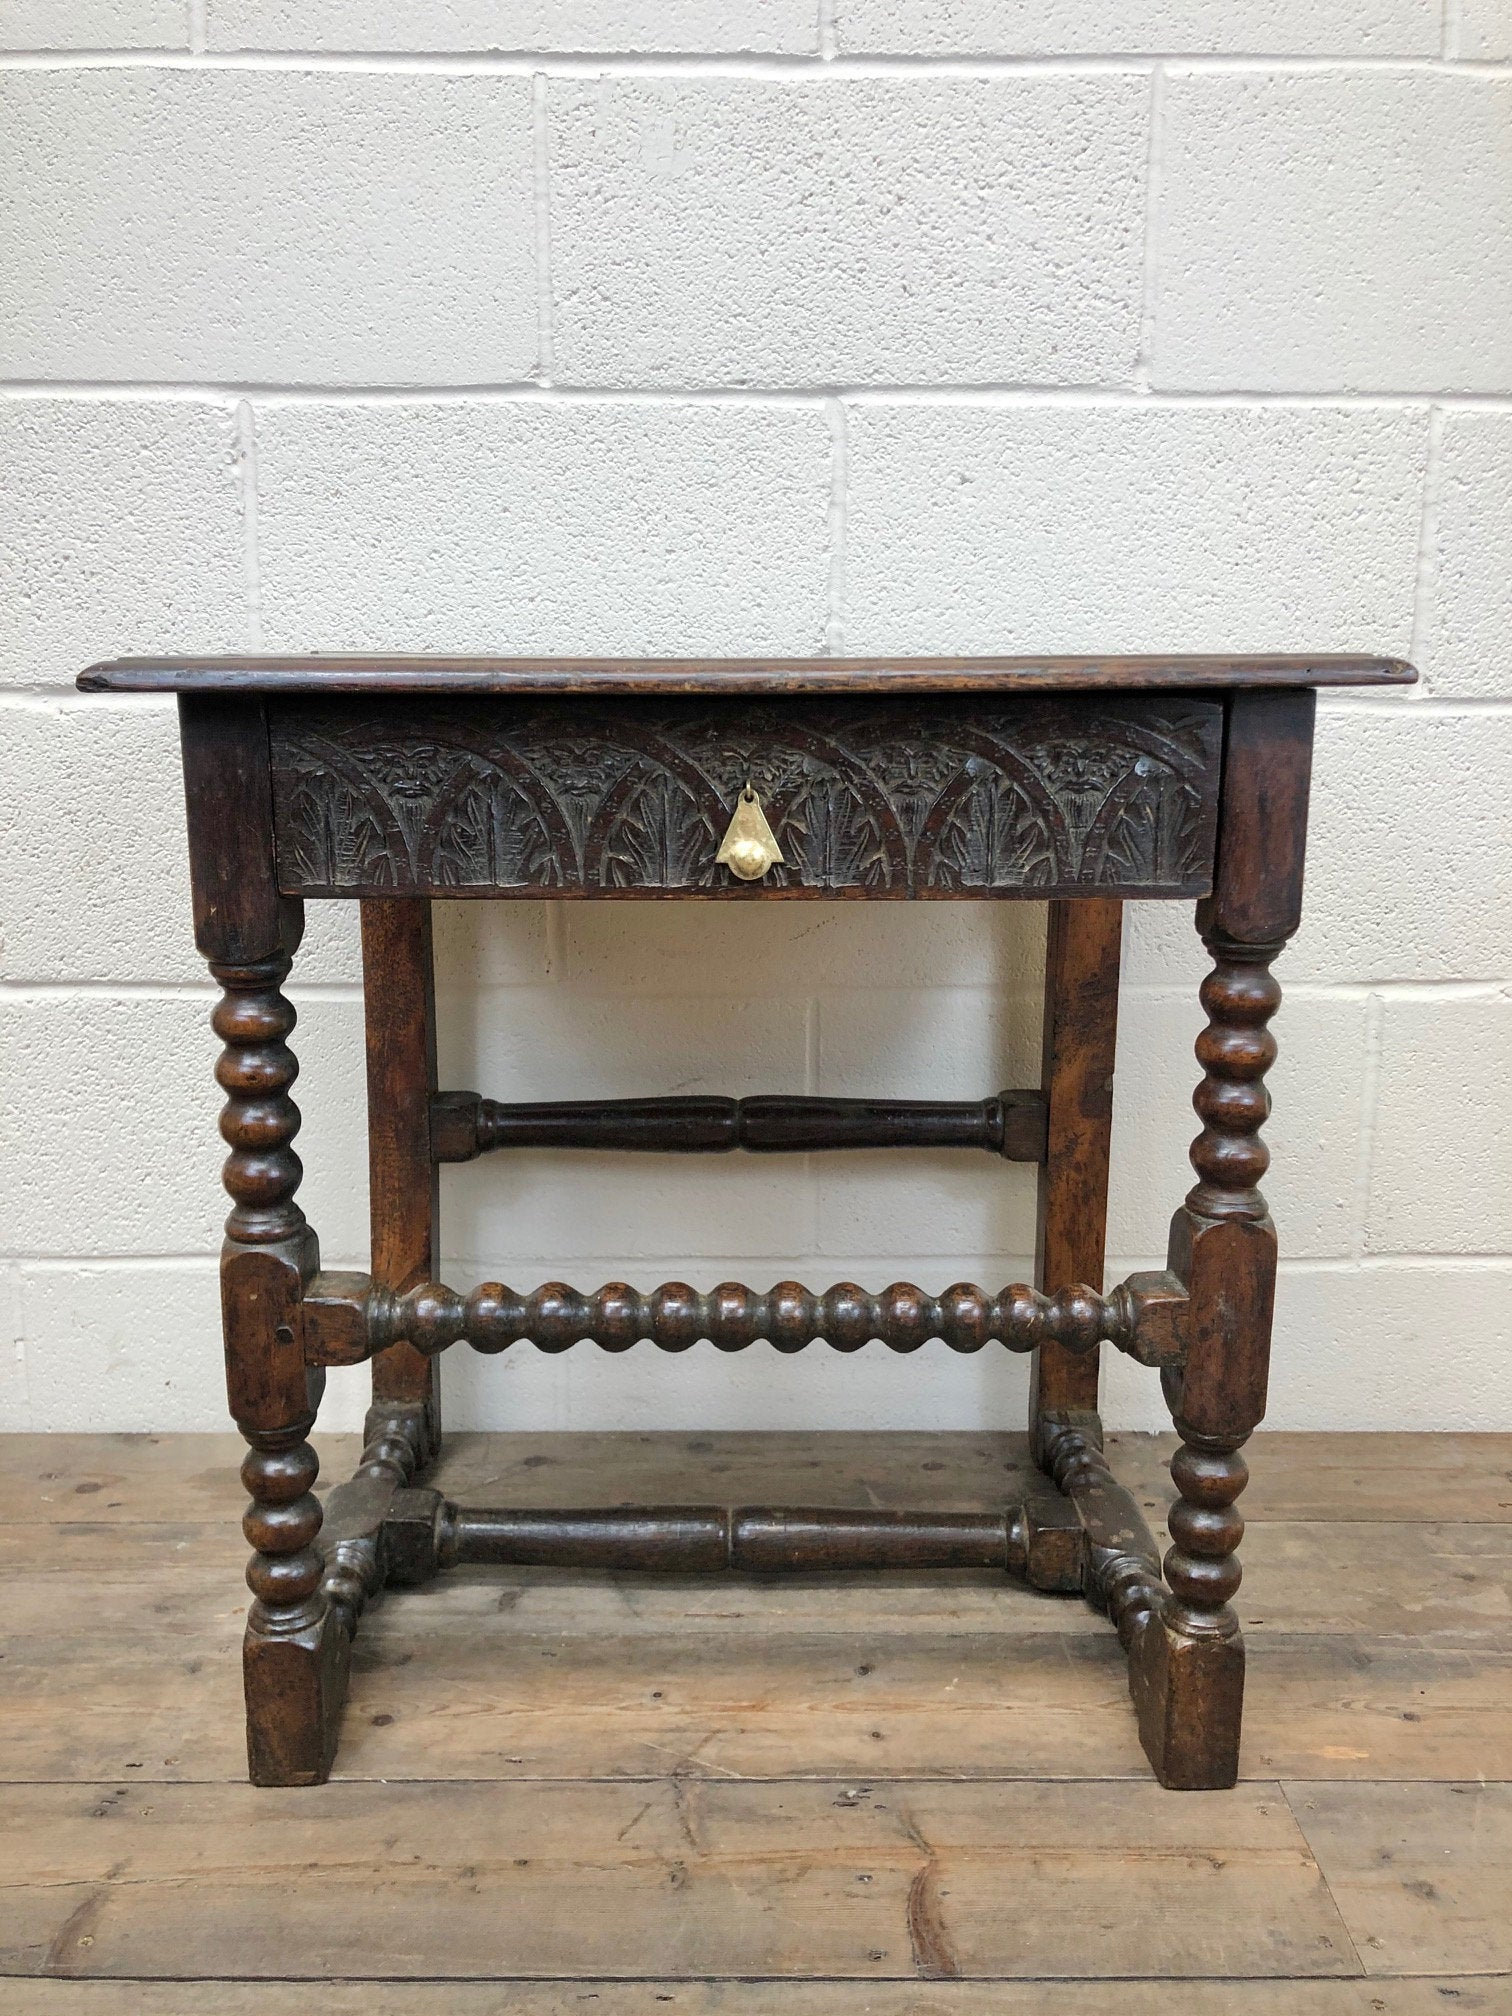 Antiques Antique Furniture Antique Table Oak Table Antique Side Table Oak Furniture Antique Small Table 18th Century Hallway Antique Vinterior